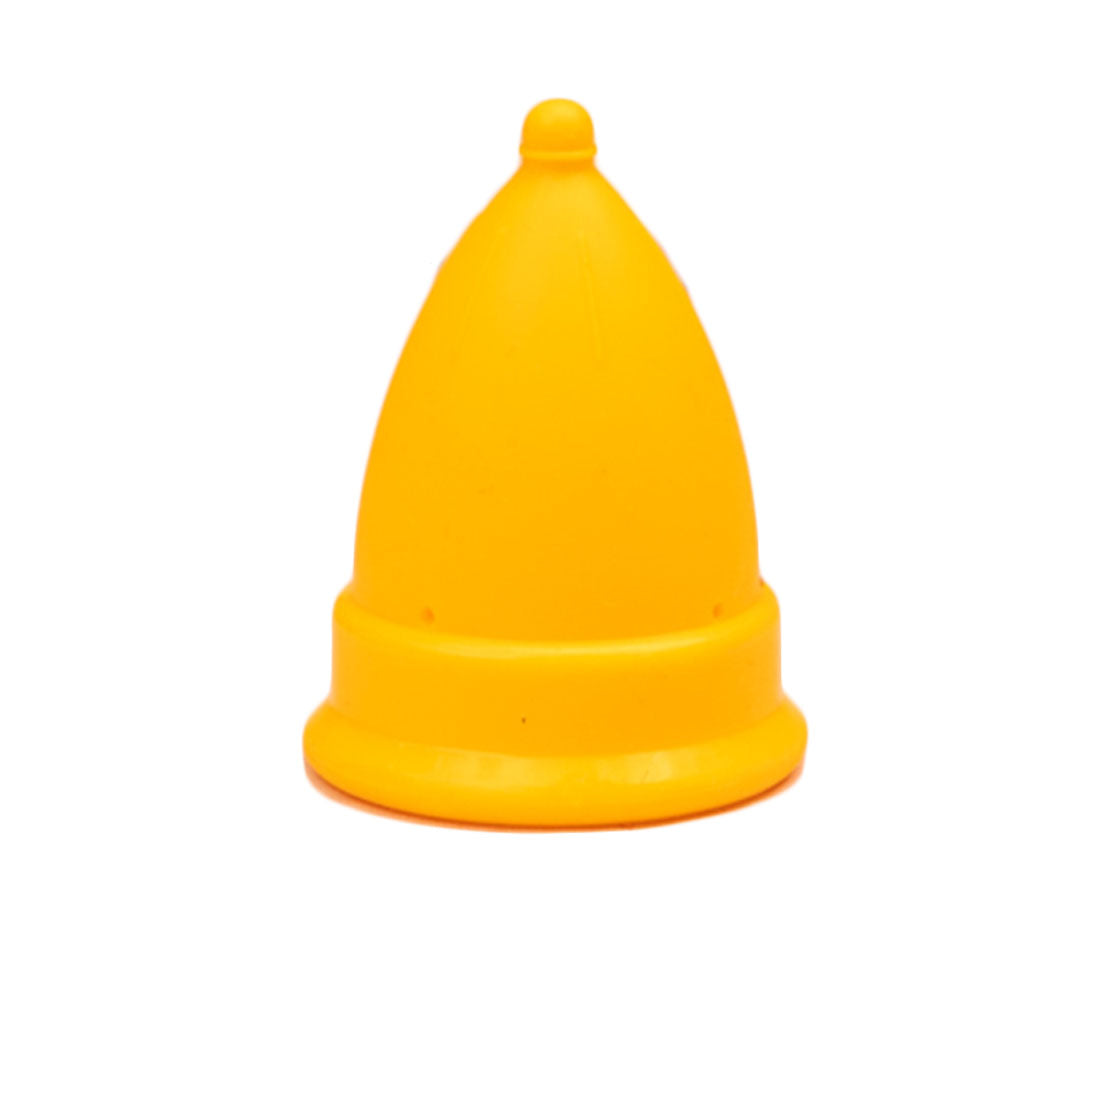 Boondh Menstrual Cup (Yellow)